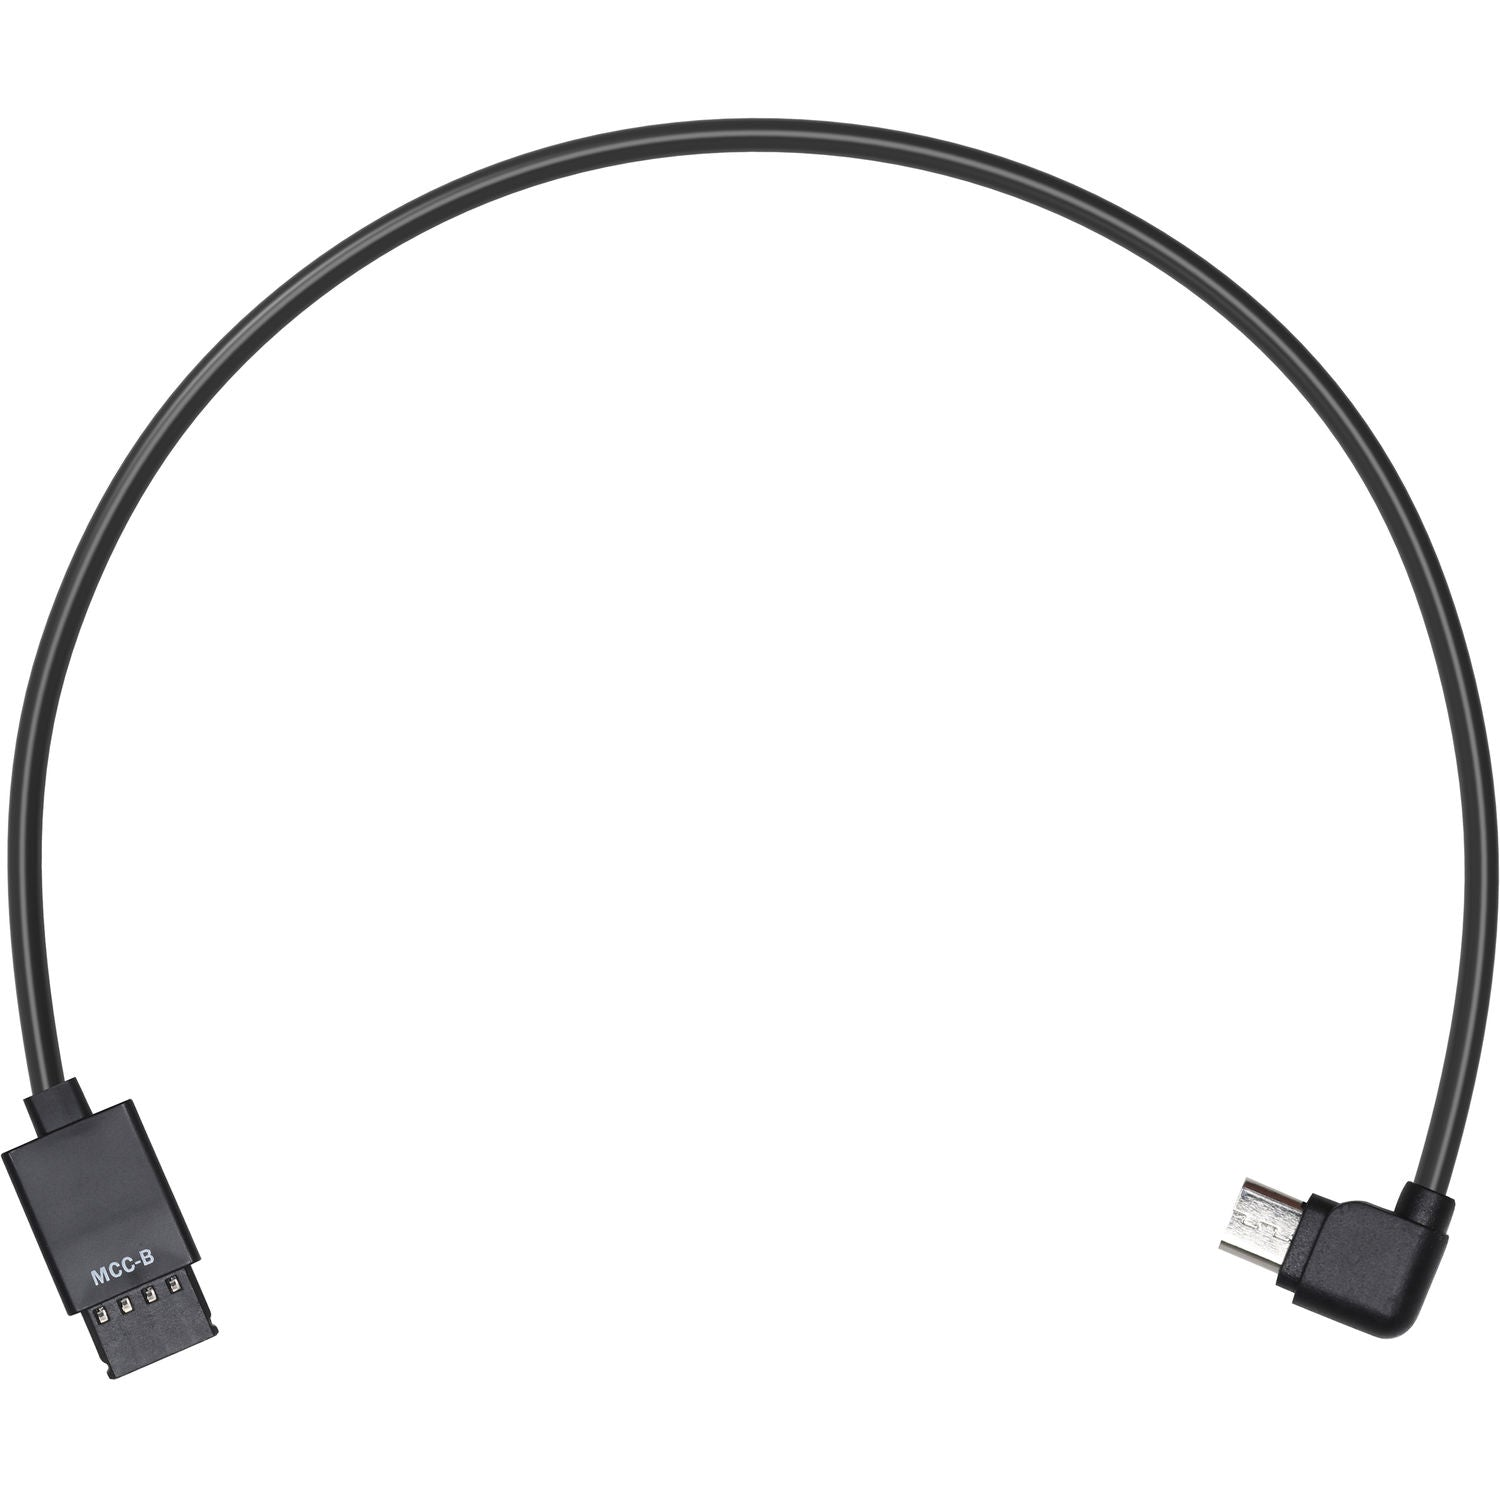 DJI Ronin-S Multi-Camera Control Cable (Multi) Part 13